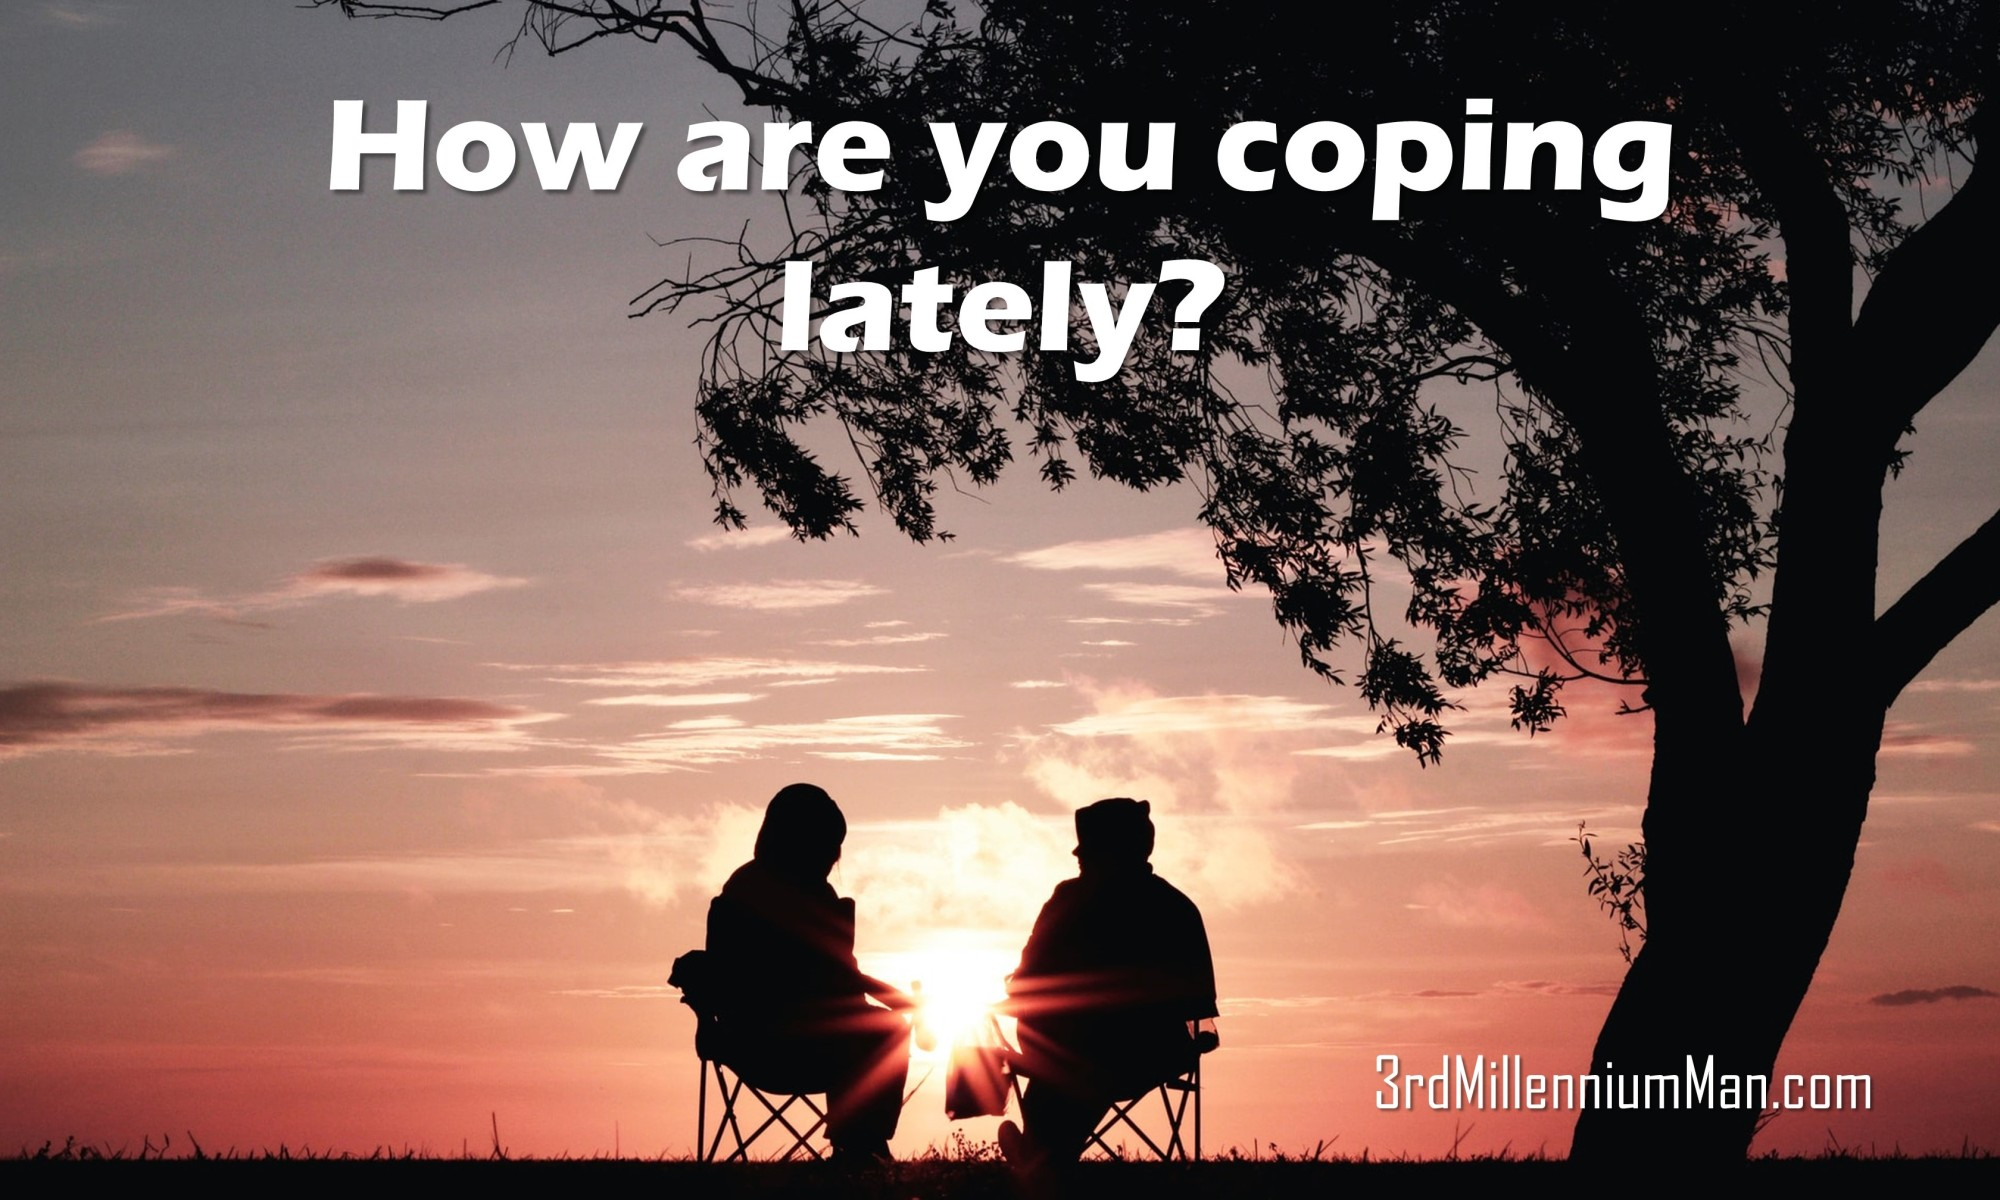 title text with image of two people sitting and talking under a tree